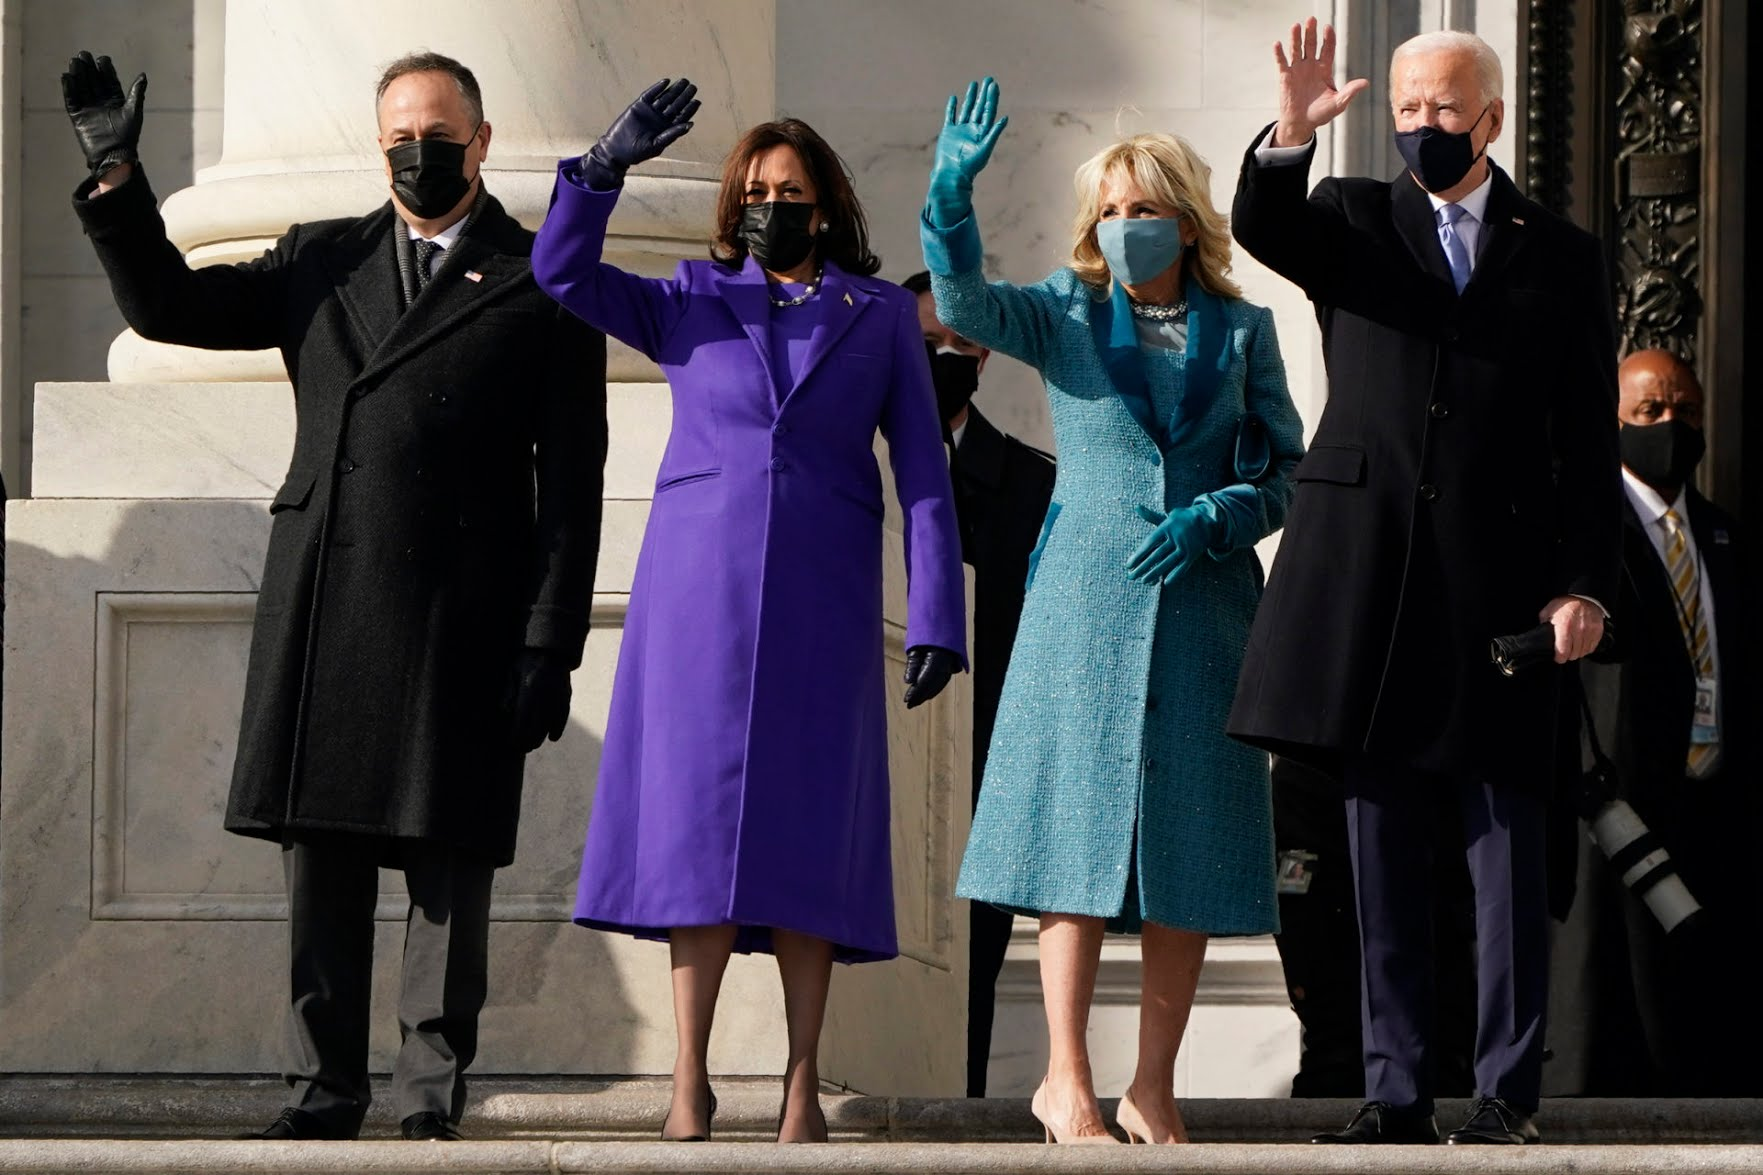 President-elect Joe Biden, his wife Jill Biden and Vice President-elect Kamala Harris and her husband Doug Emhoff arrive at the steps of the U.S. Capitol for the start of the official inauguration ceremonies, in Washington on Wednesday. (J. Scott Applewhite/AP)